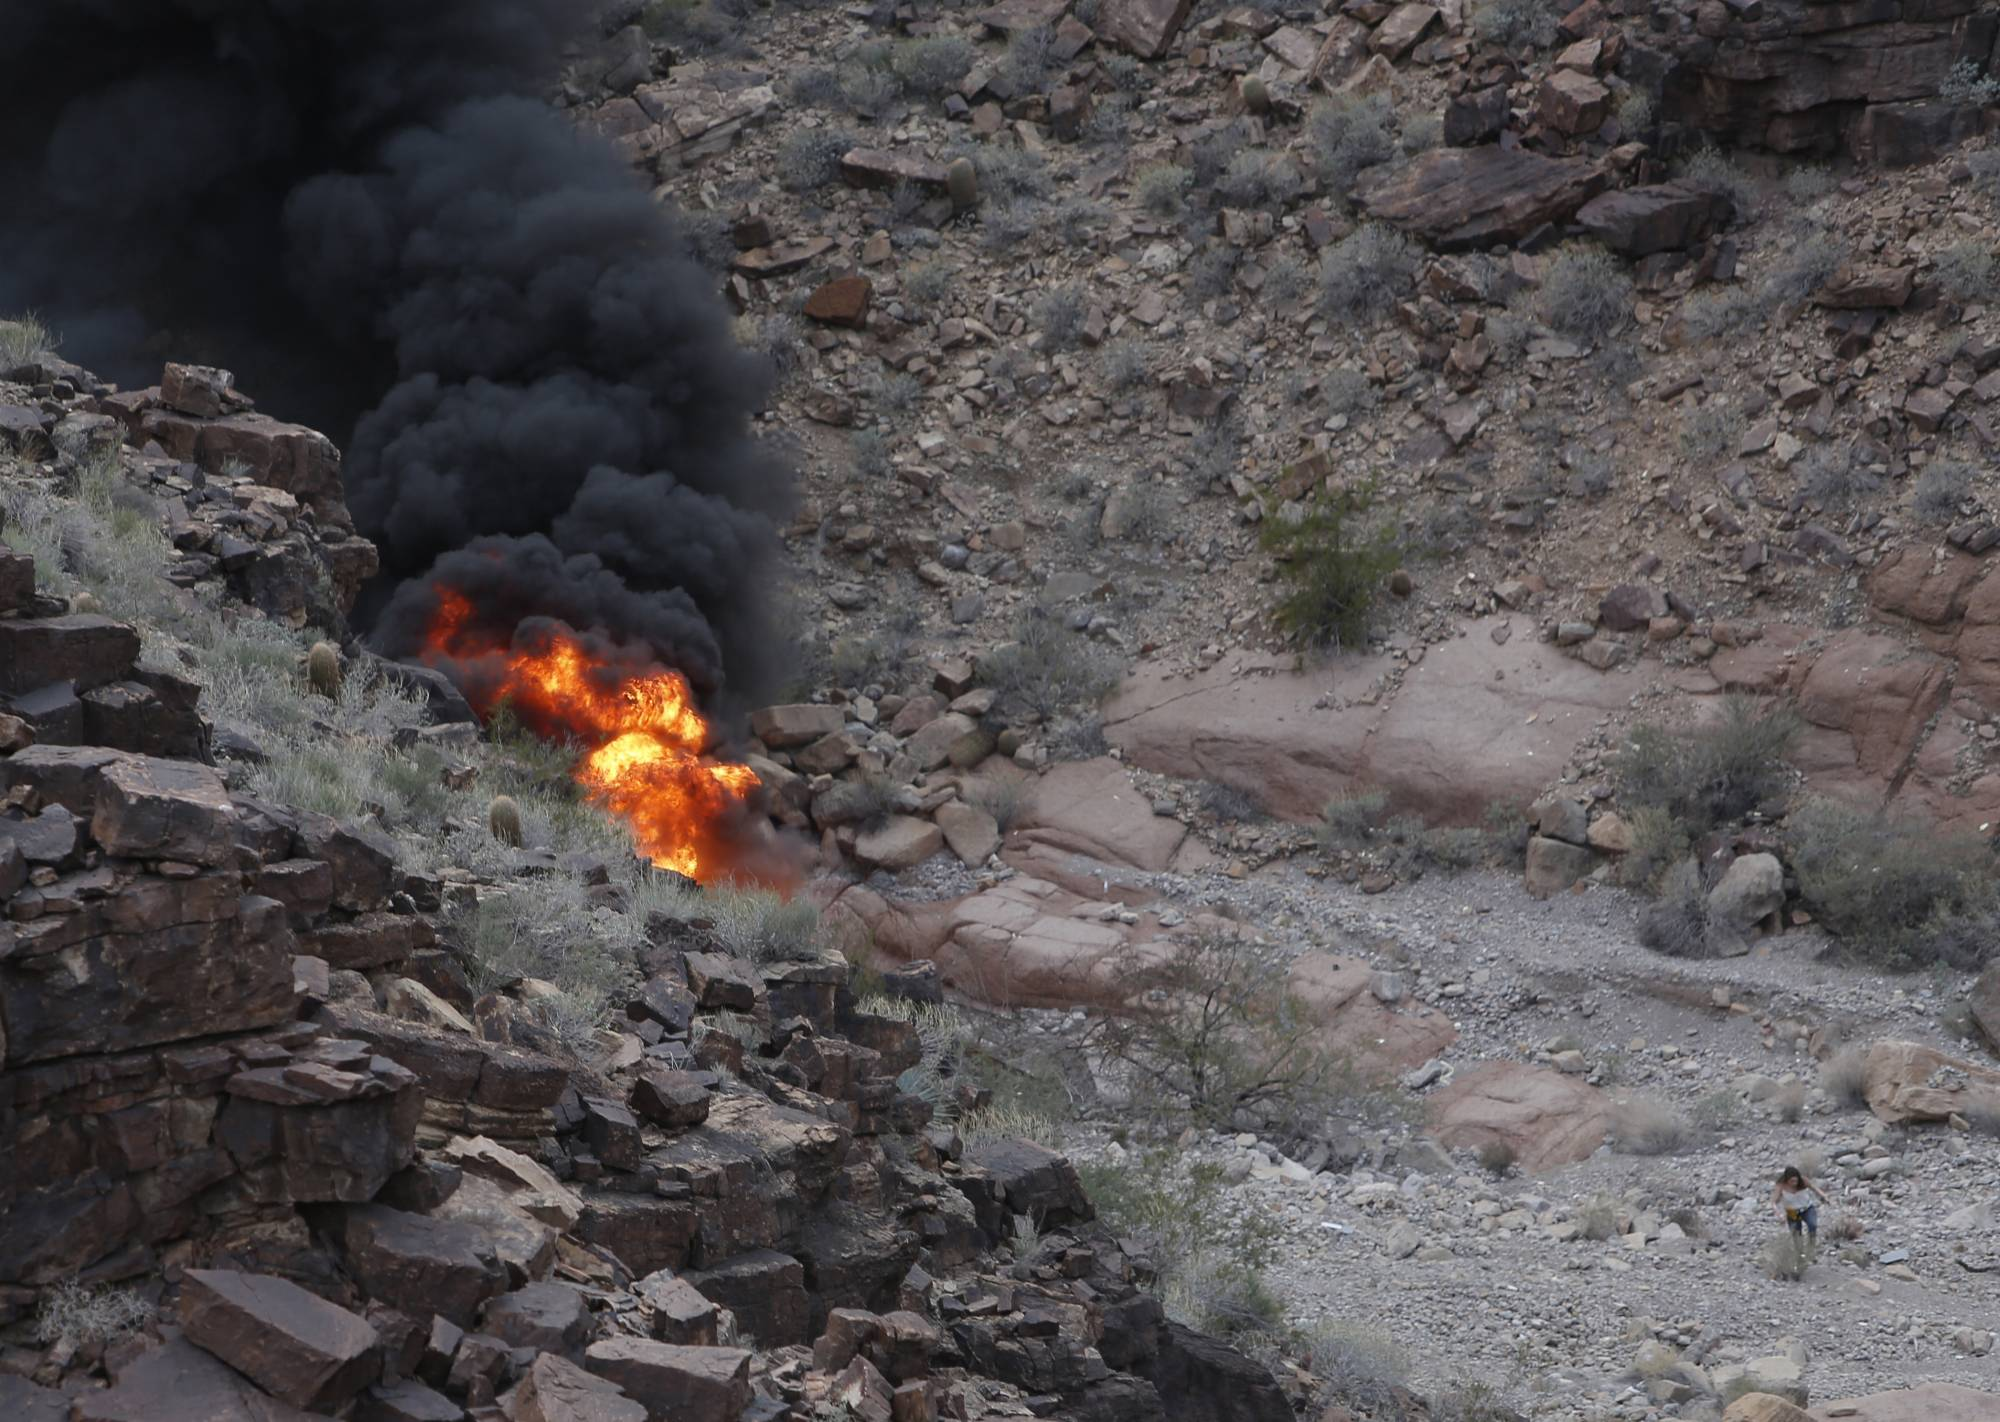 3 dead, 4 injured in Grand Canyon helicopter crash, police say